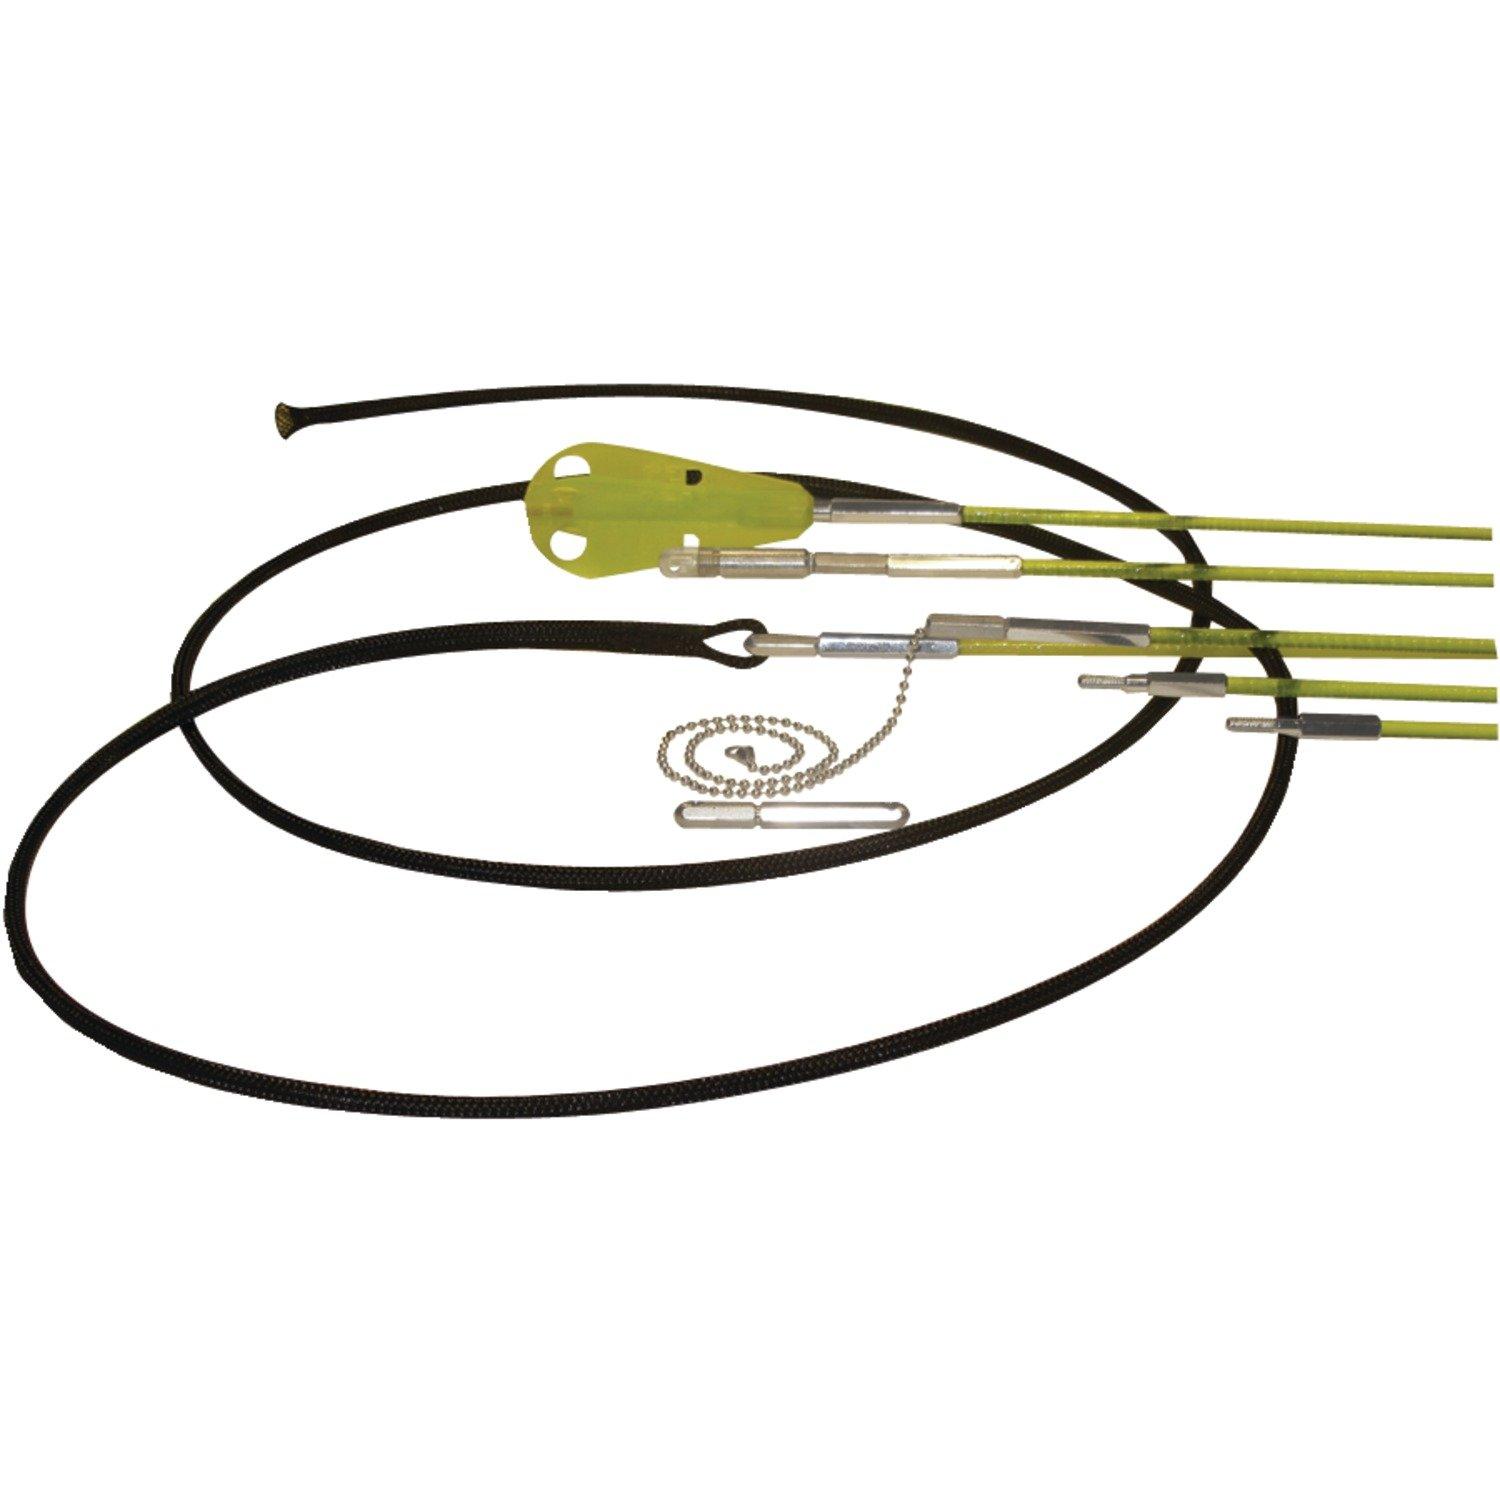 LABOR SAVING DEVICES 81-000 Creep-Zit Fiberglass Wire Running Kit